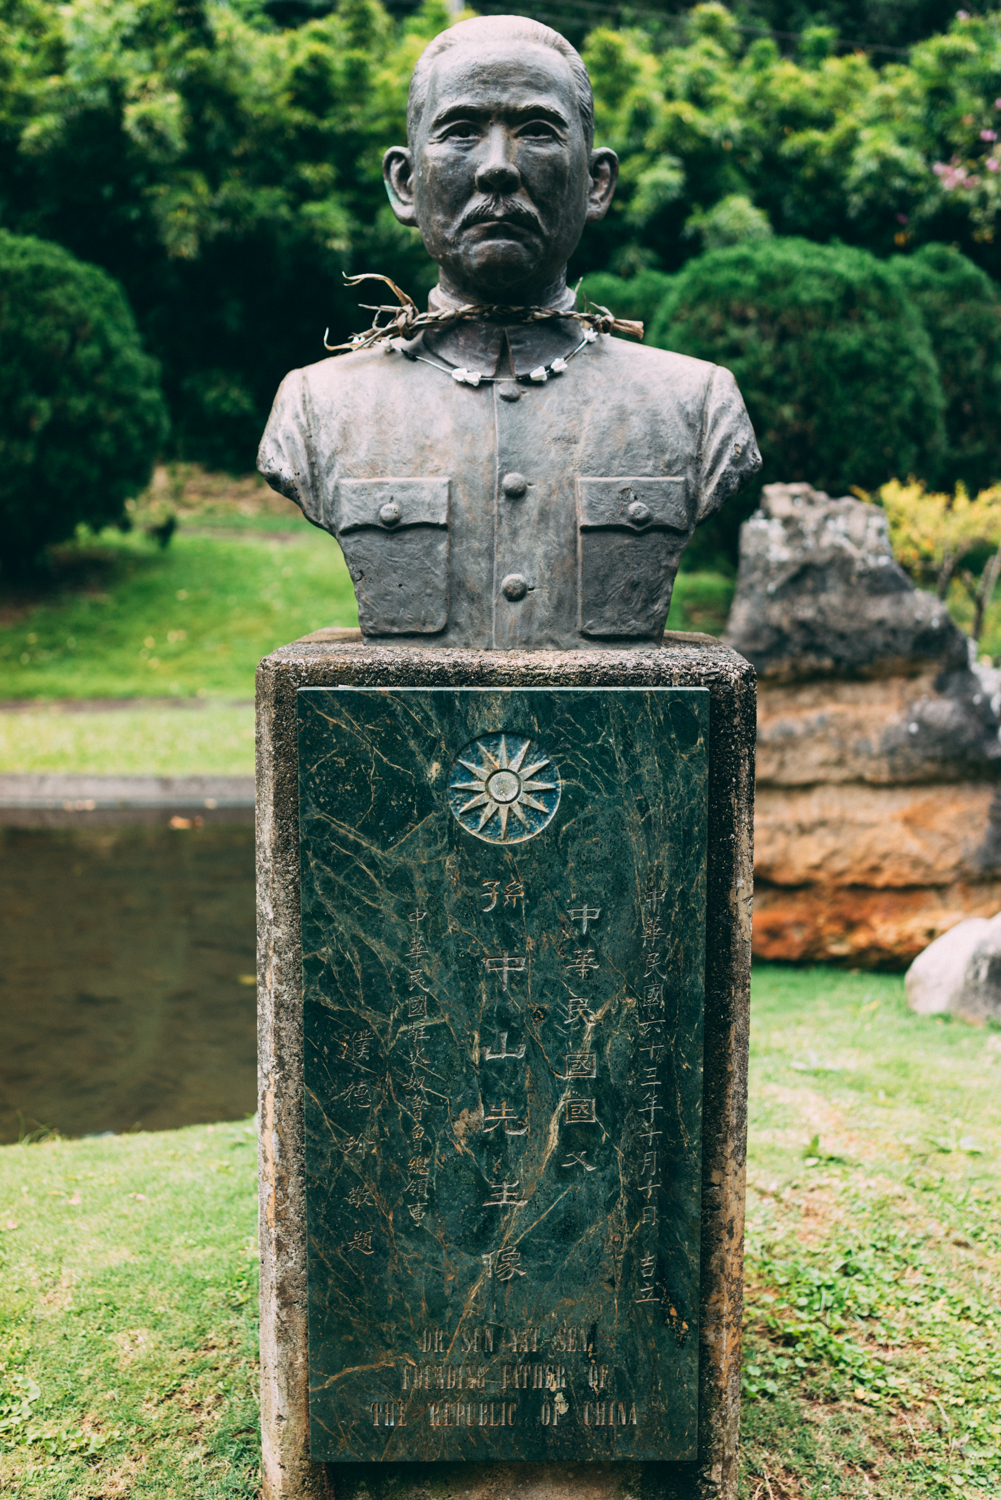 Dr. Sen Yat-Sen, Father of the Republic of China. I don't know why it was placed in the Japanese gardens but it was.